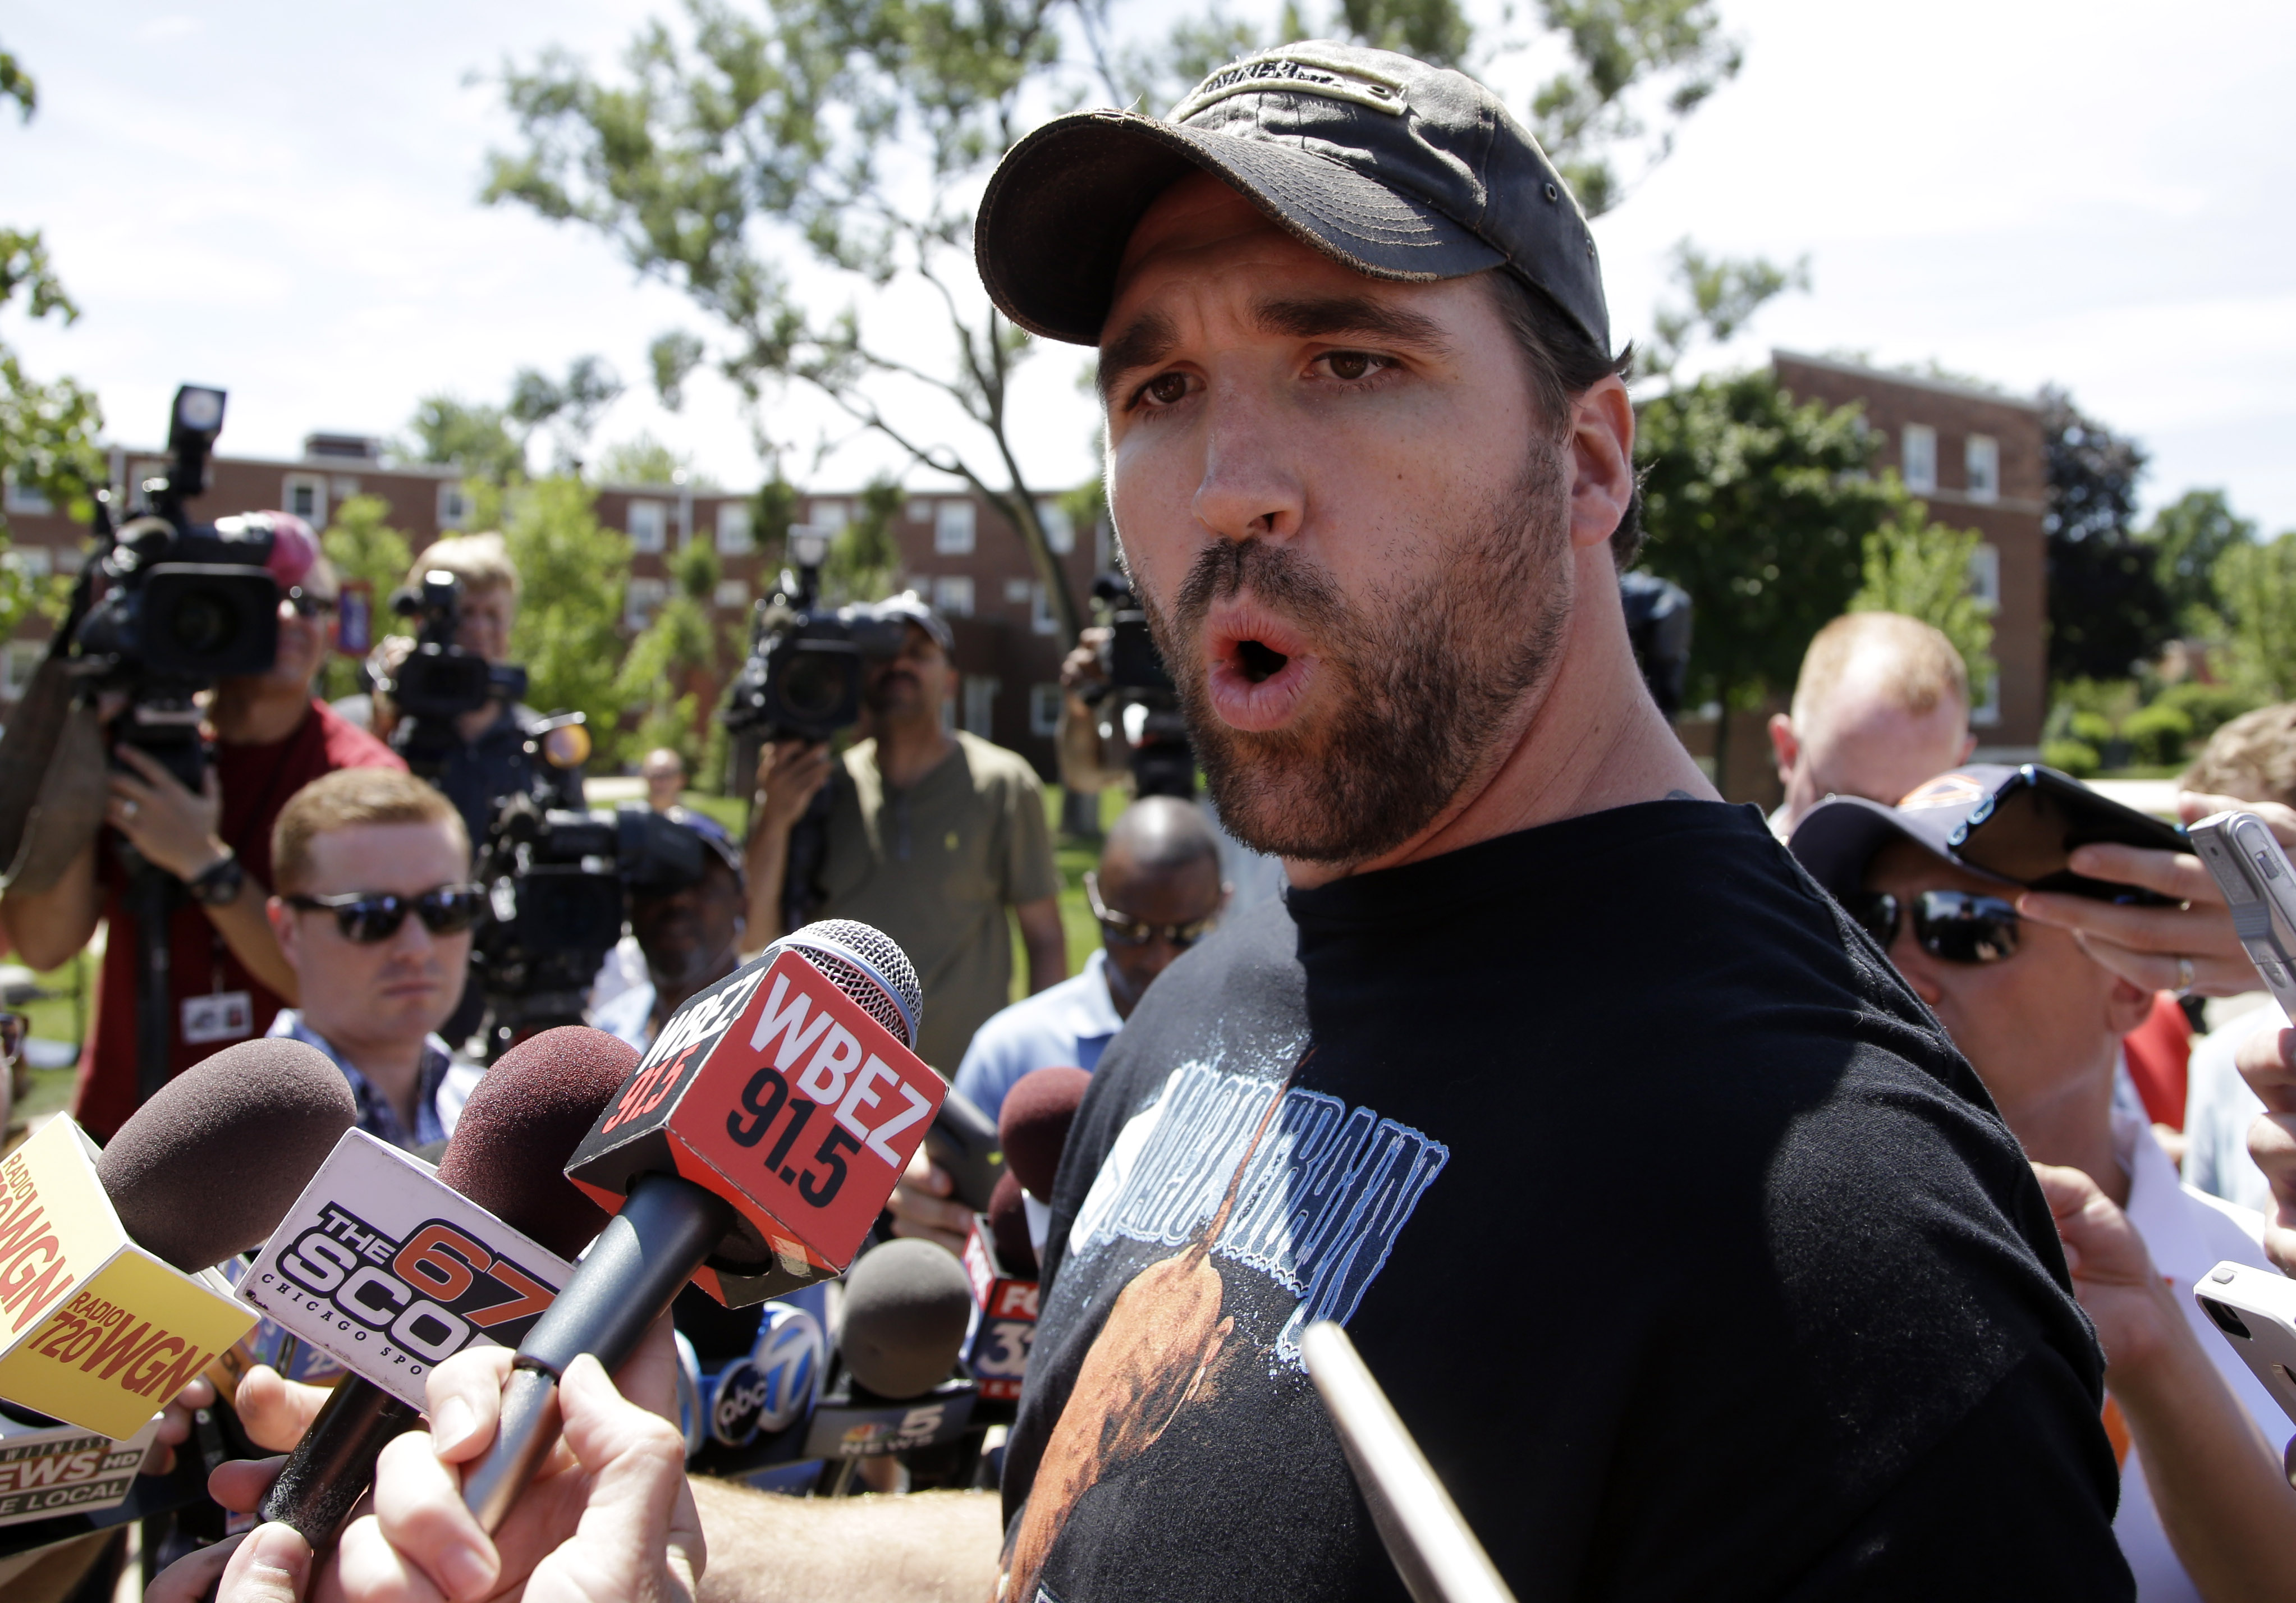 Chicago Bears linebacker Jared Allen speaks during an NFL football training camp media availability at Olivet Nazarene University, Wednesday, July 29, 2015, in Bourbonnais, Ill. (AP Photo/Nam Y. Huh)